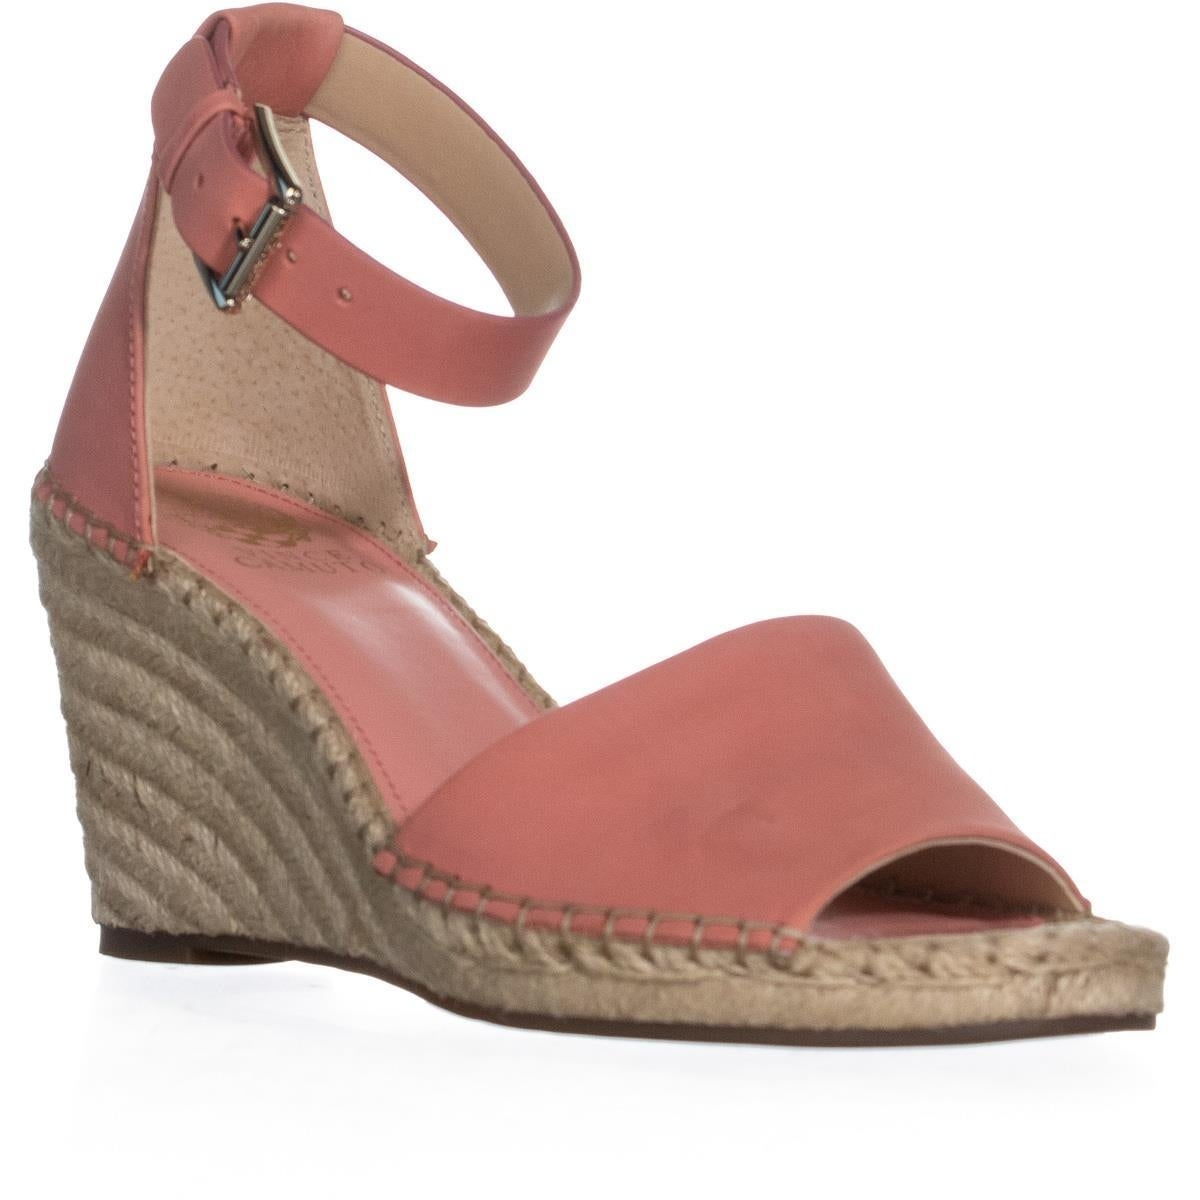 870a79a52bf Shop Vince Camuto Leera Espadrille Wedge Sandals